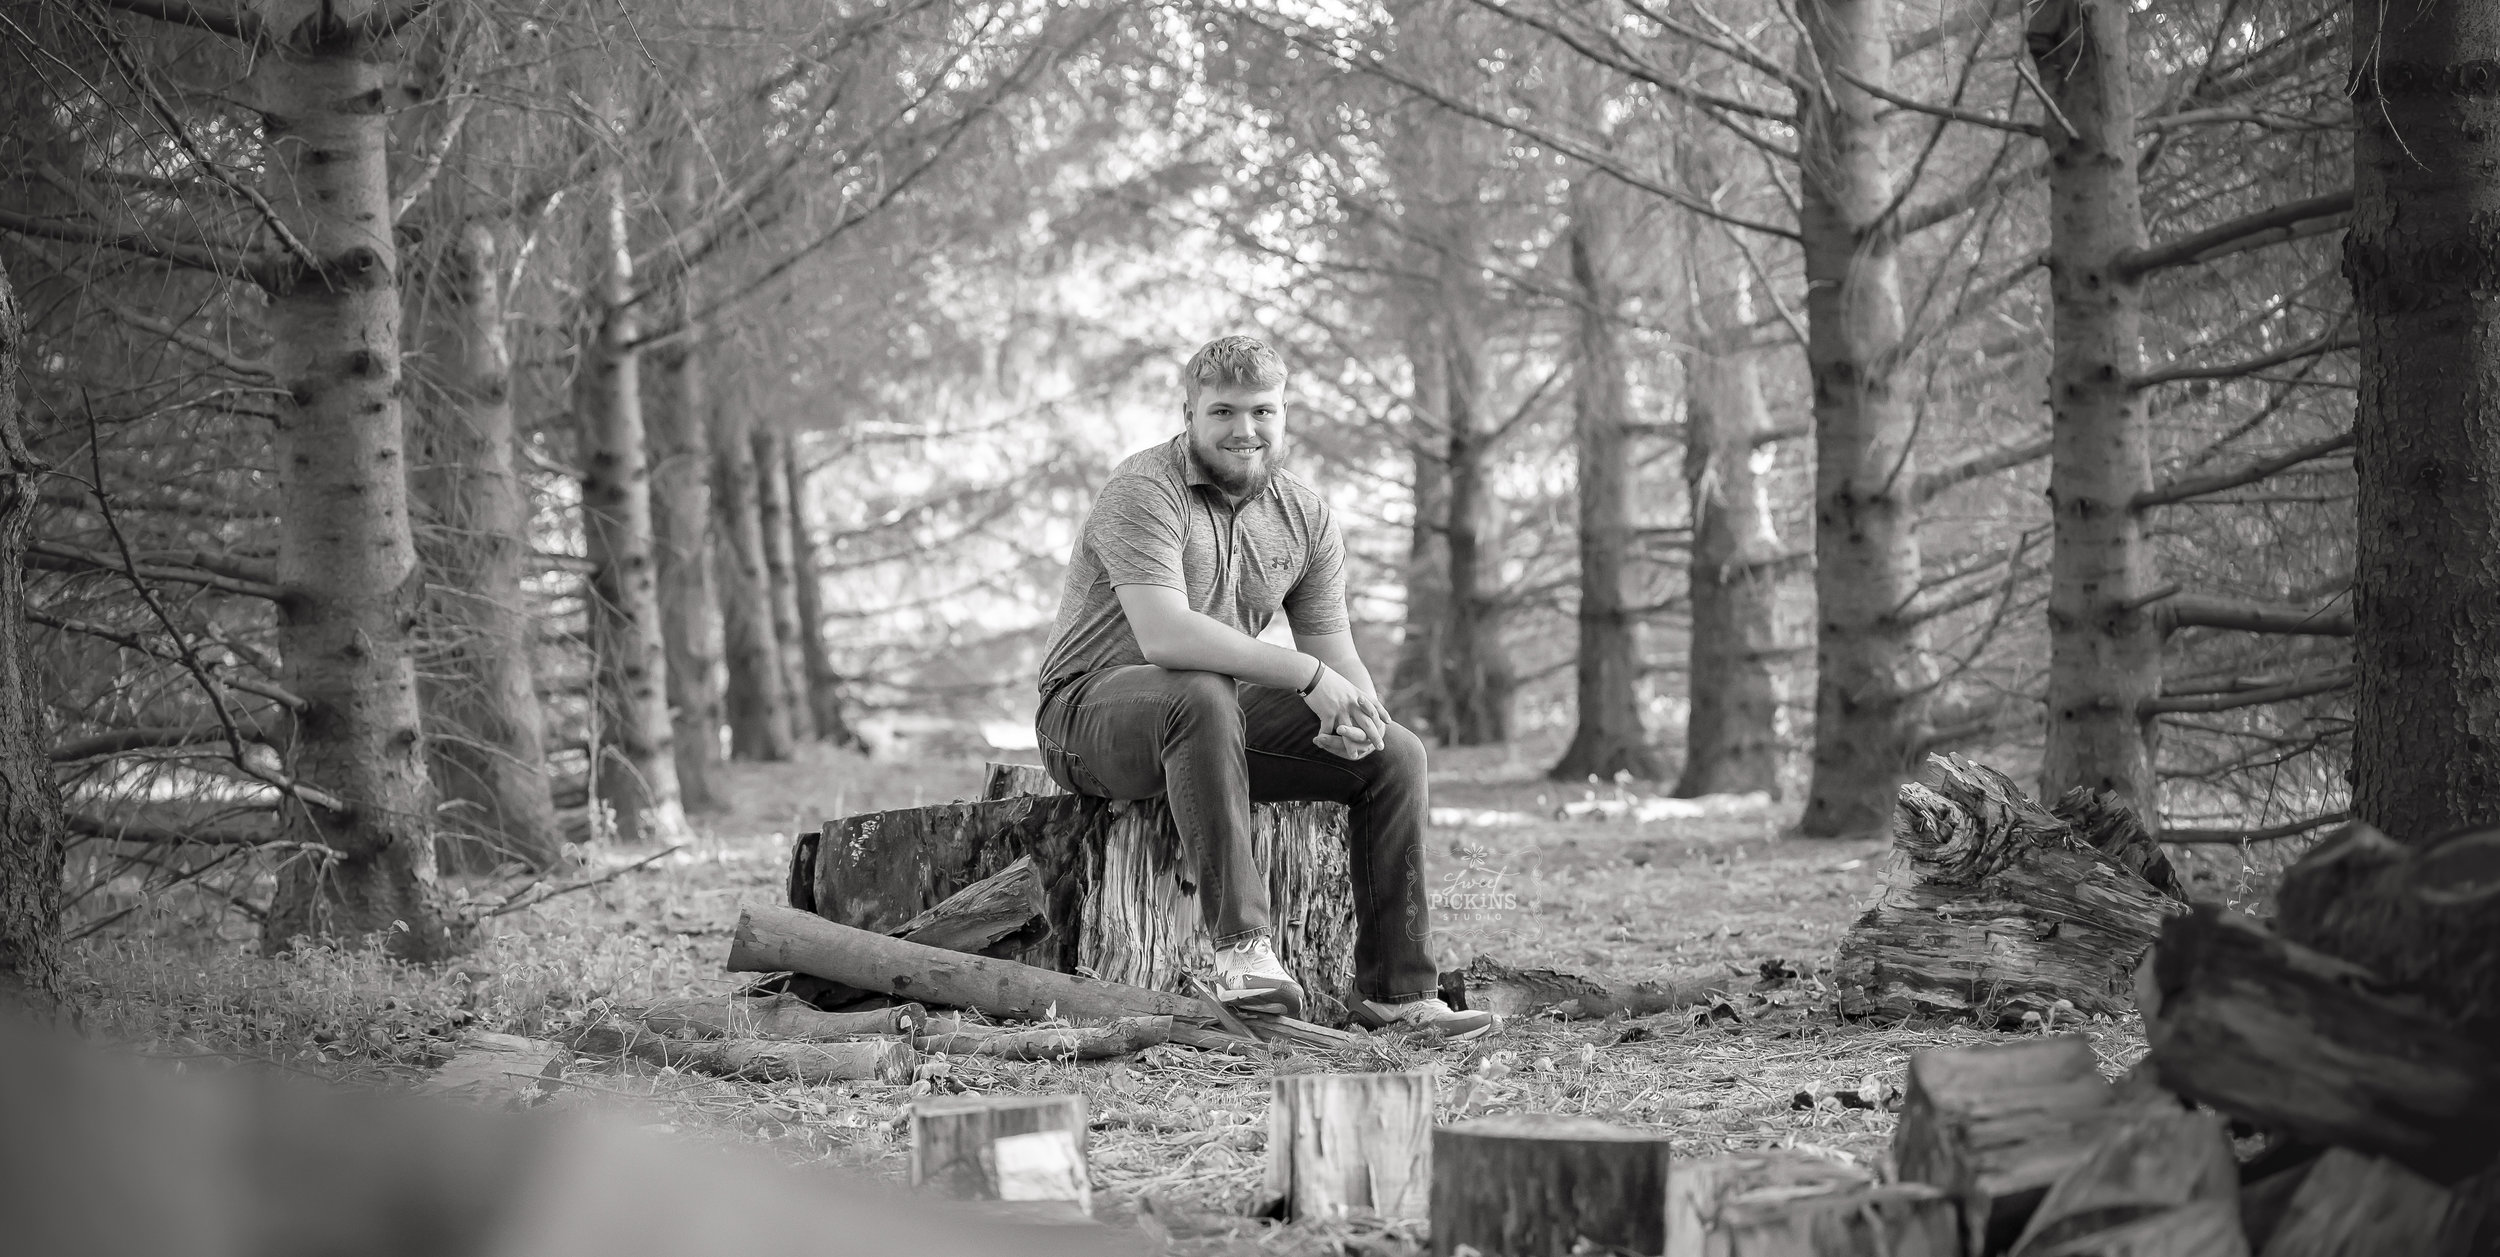 Black and White Senior Photo | Forest Trees in Sunset Light